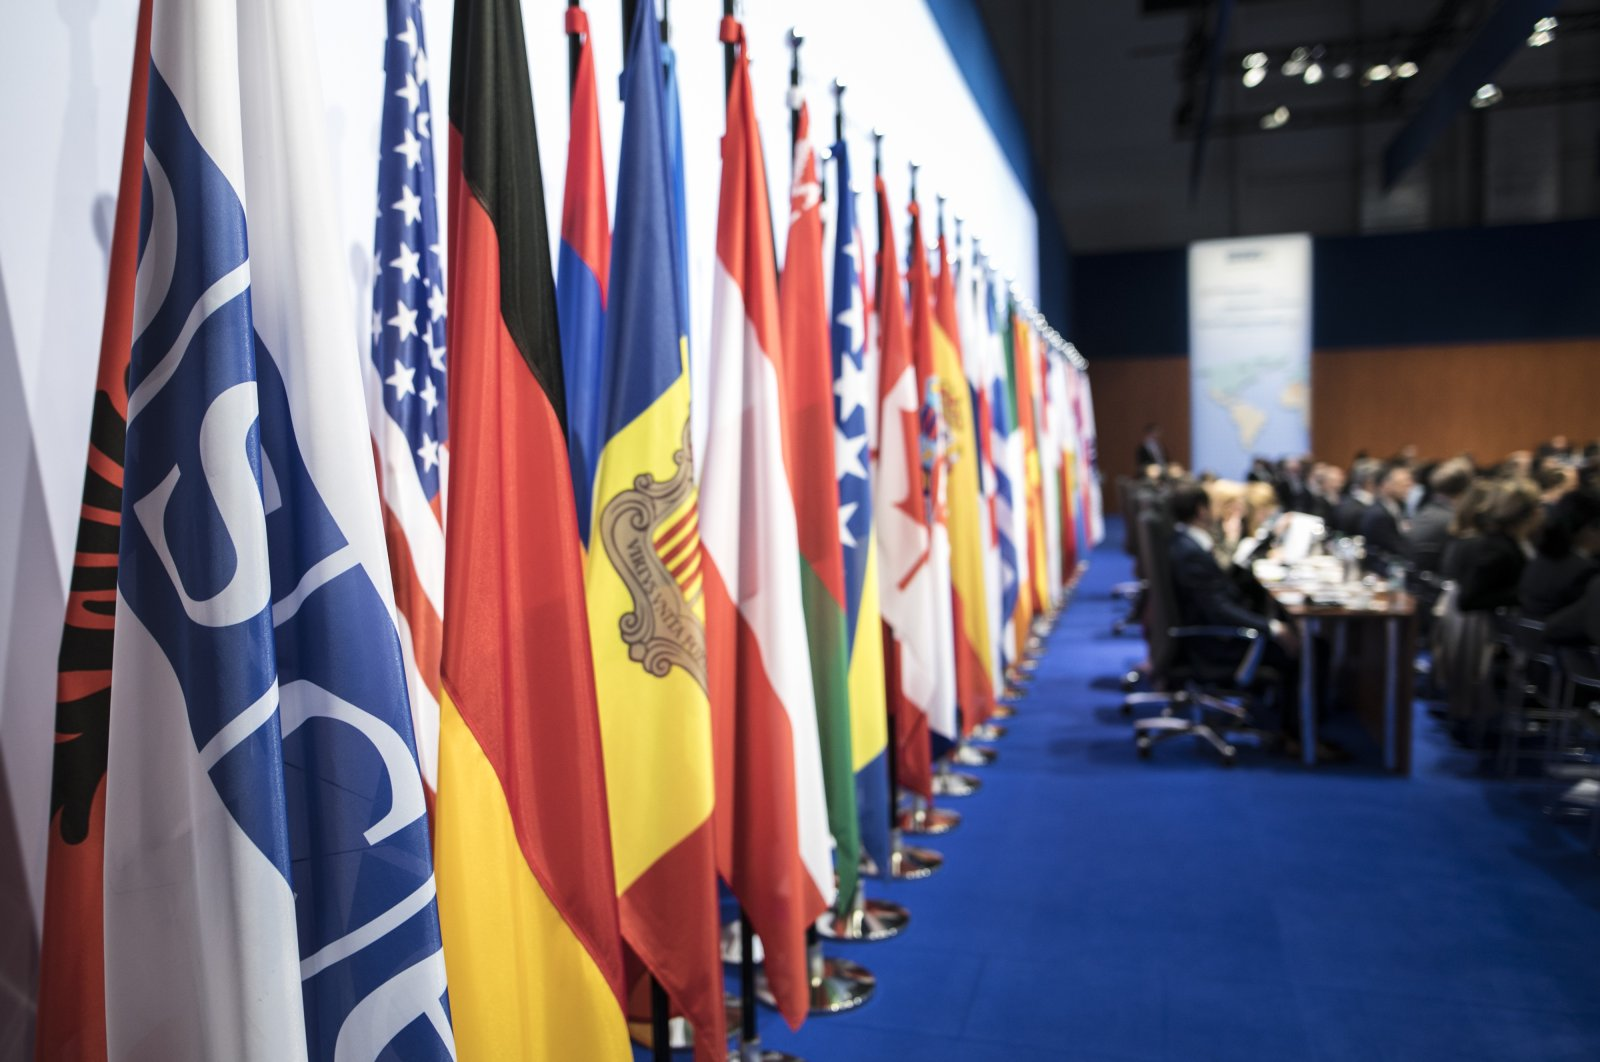 Flags stand in the plenary room of the OSCE Ministerial Council in Hamburg, Germany, Dec. 8, 2016. (Getty Images)